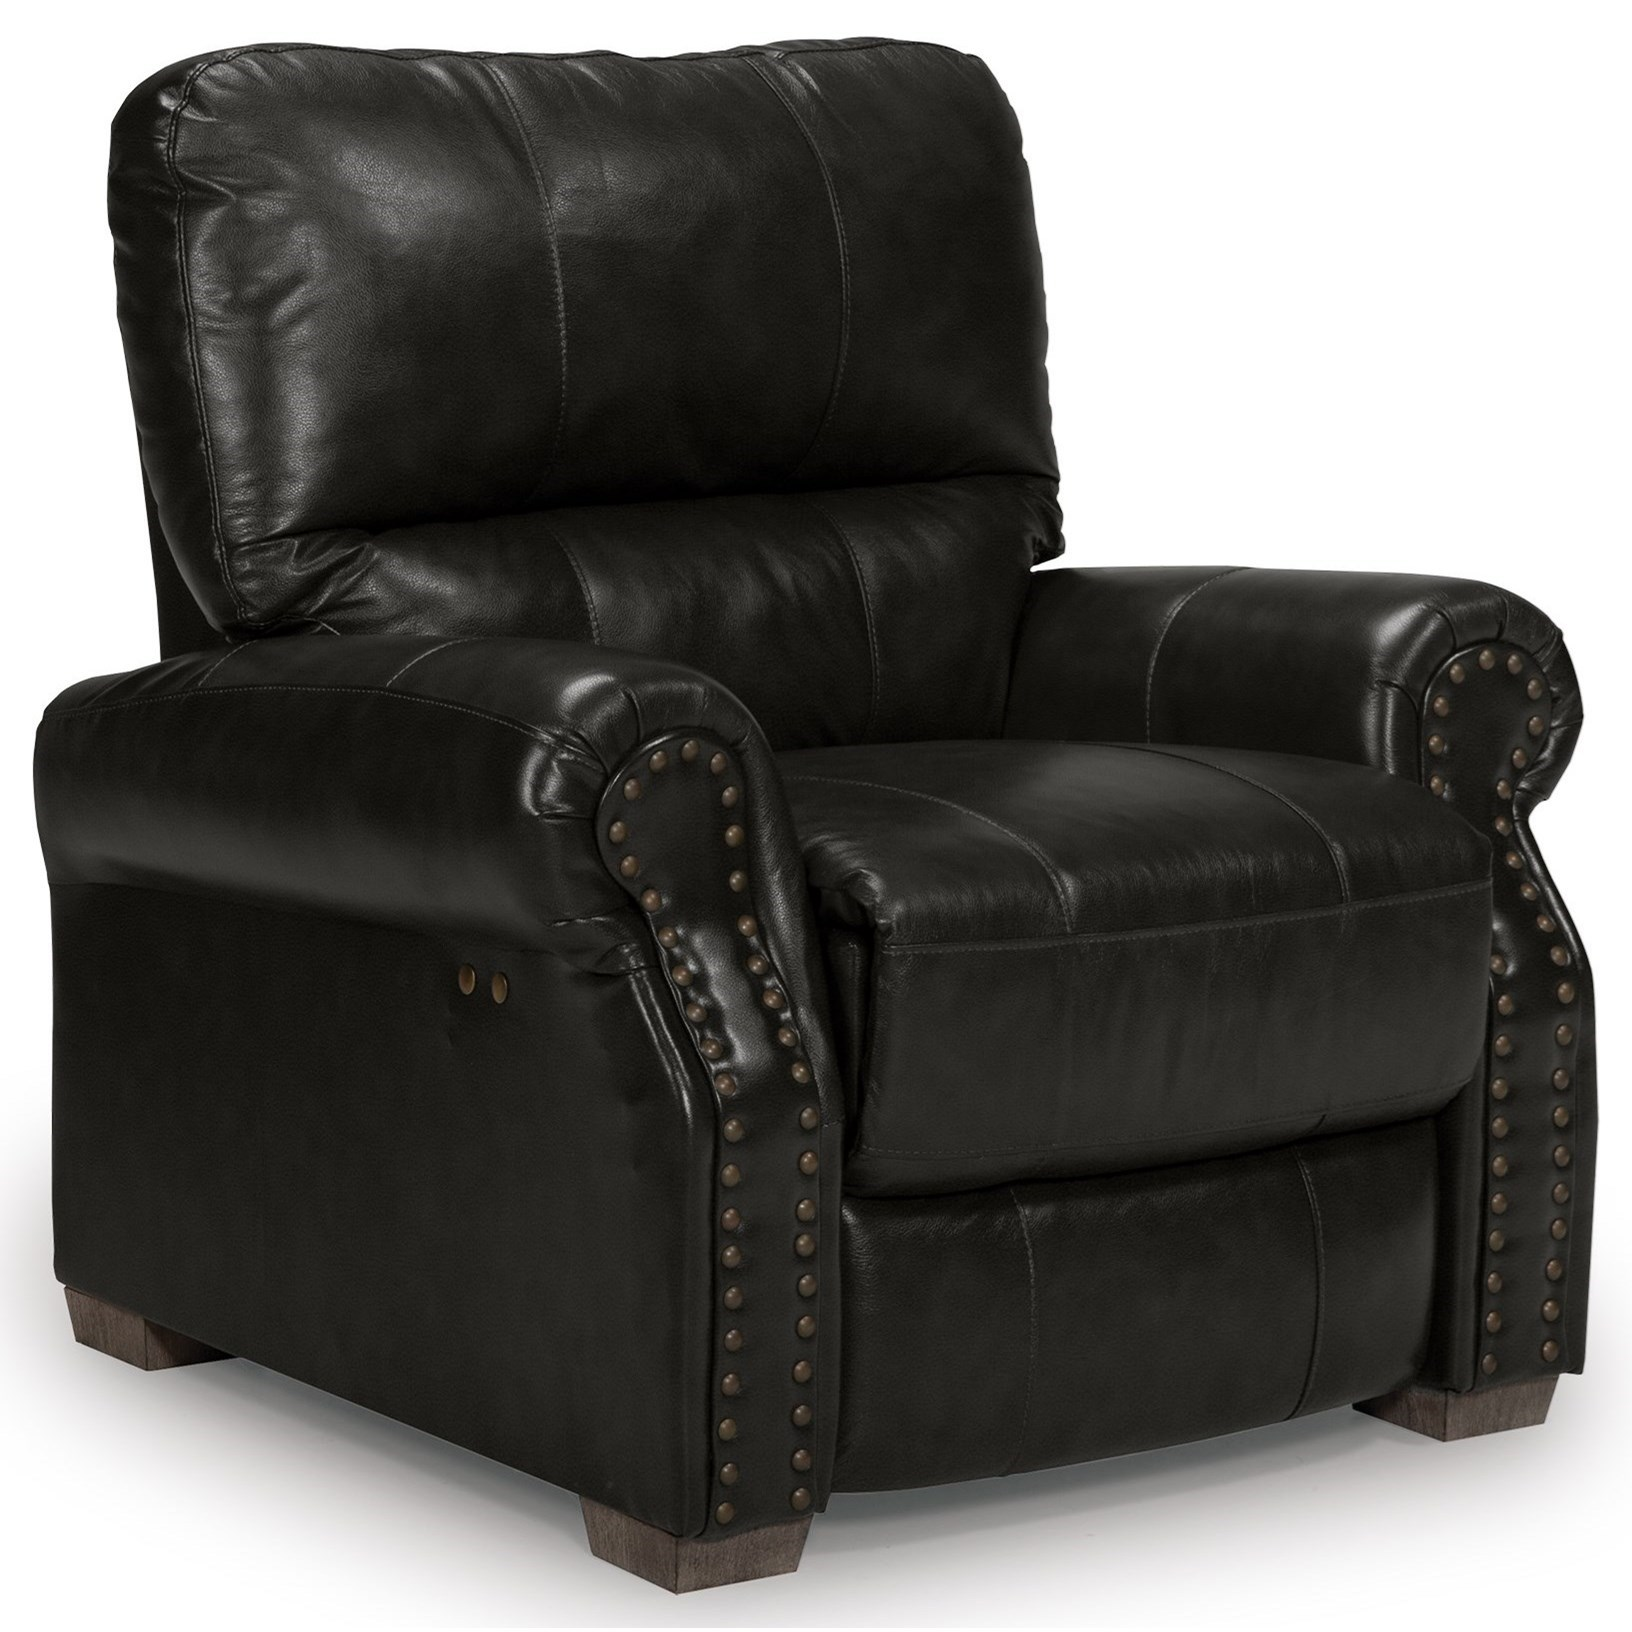 Best Home Furnishings Lander Power High Leg Recliner - Item Number: 409314438-24623AU